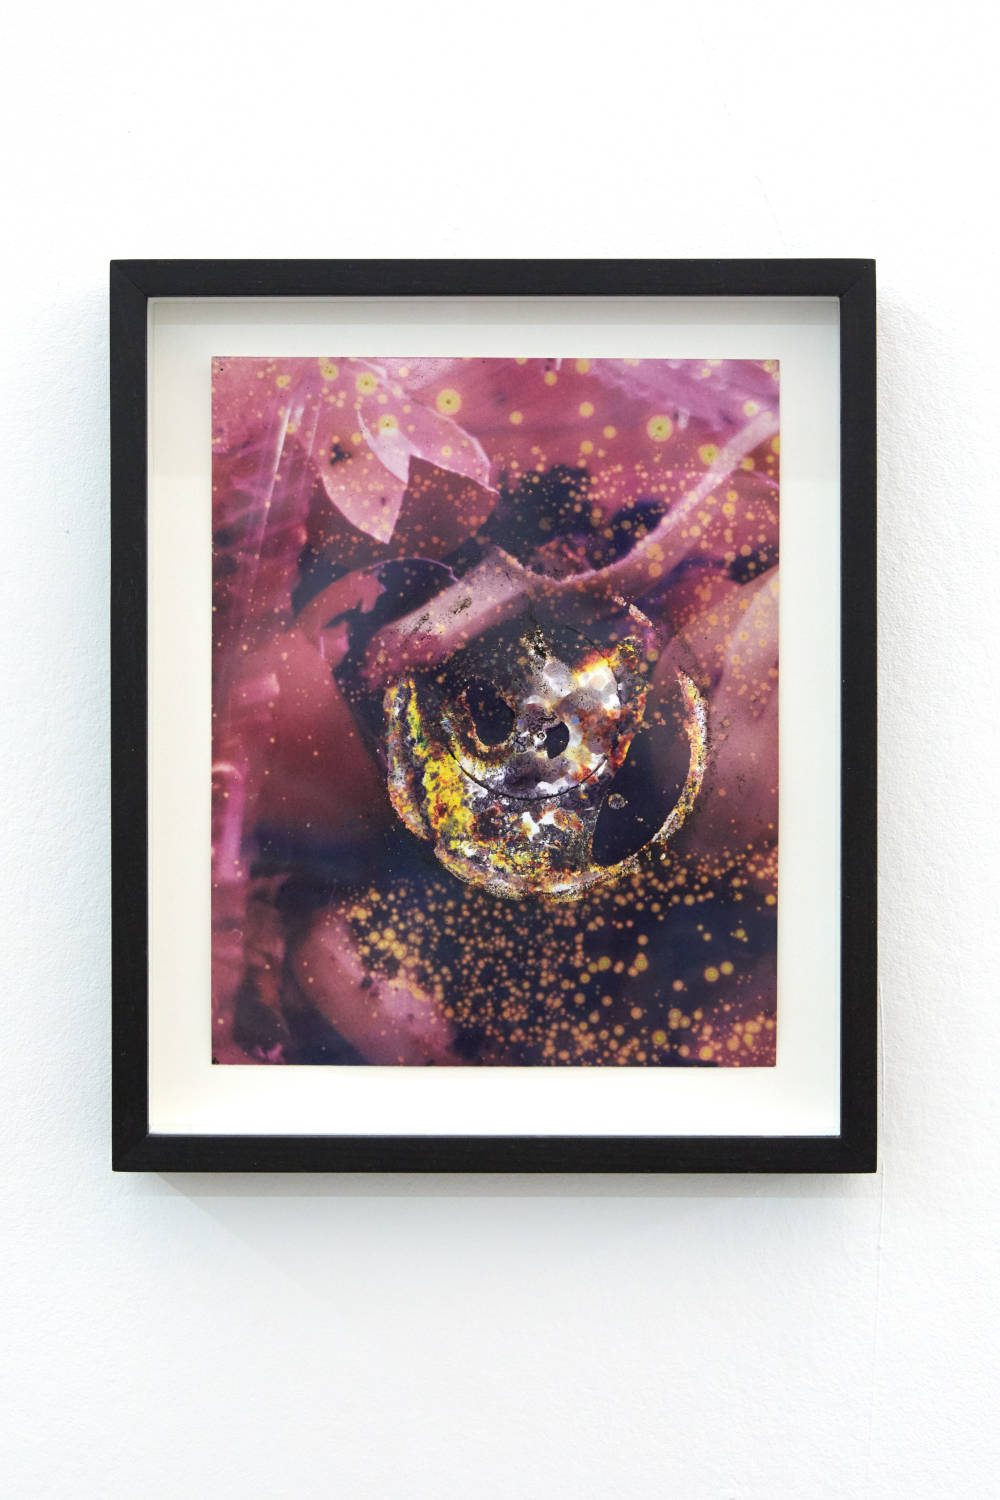 Ryan Foerster, universe, 2019. Unique c-print with debris. Image Dimensions: 24 x 20 cm (9.45 x 7.87 inches) Courtesy of the artist & VNH Gallery. Photo: Johanna Benaïnous